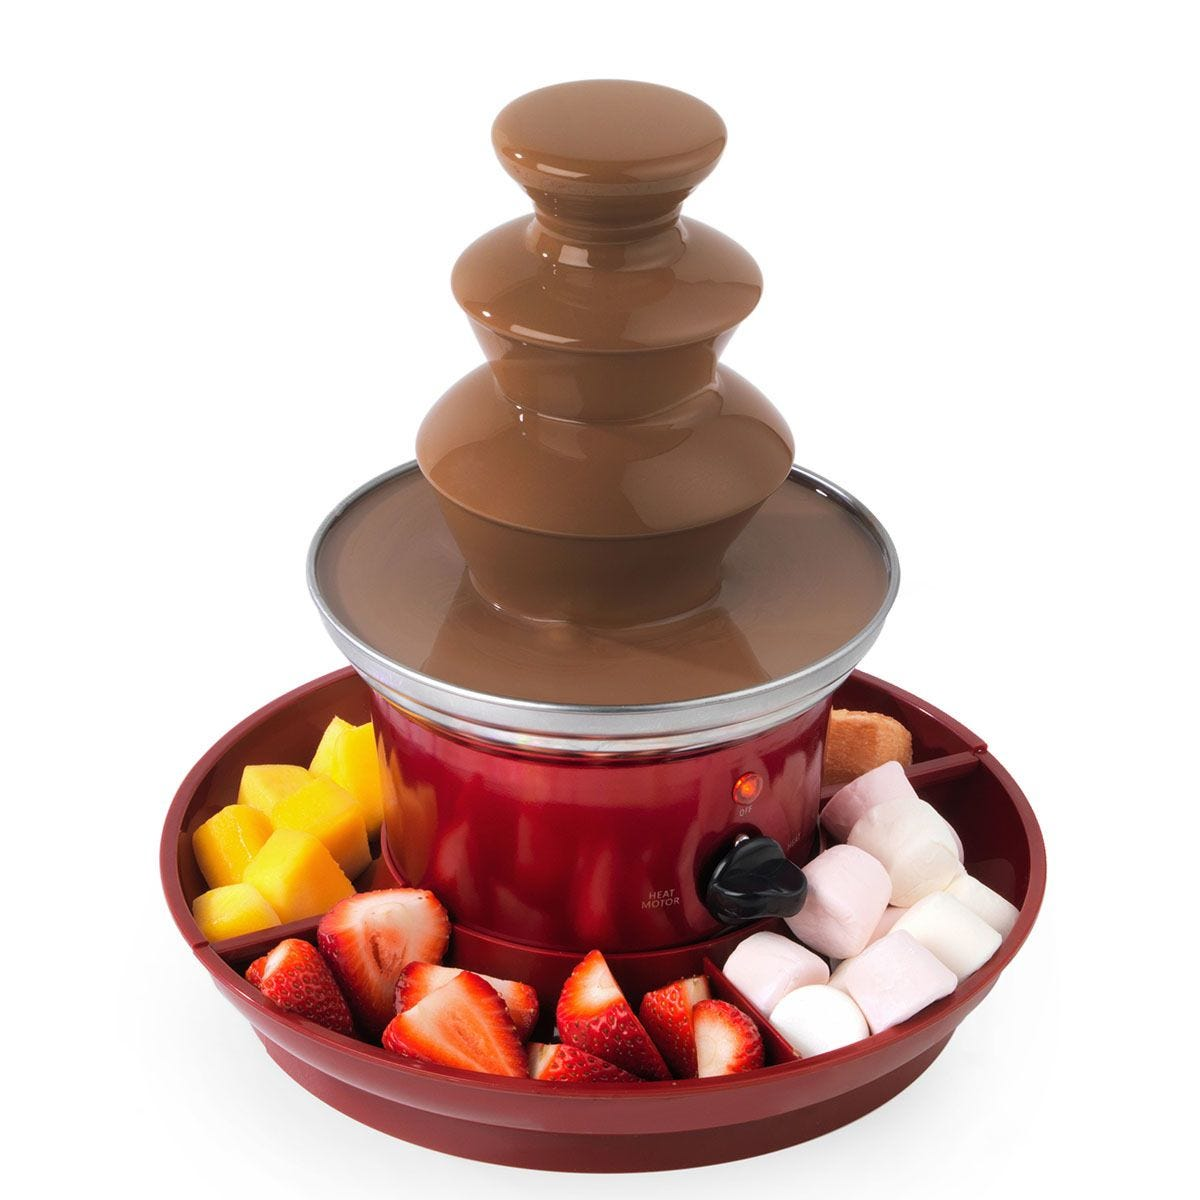 Giles & Posner EK3428G Chocolate Fountain with Fruit Tray and 100 Bamboo Skewers - Red